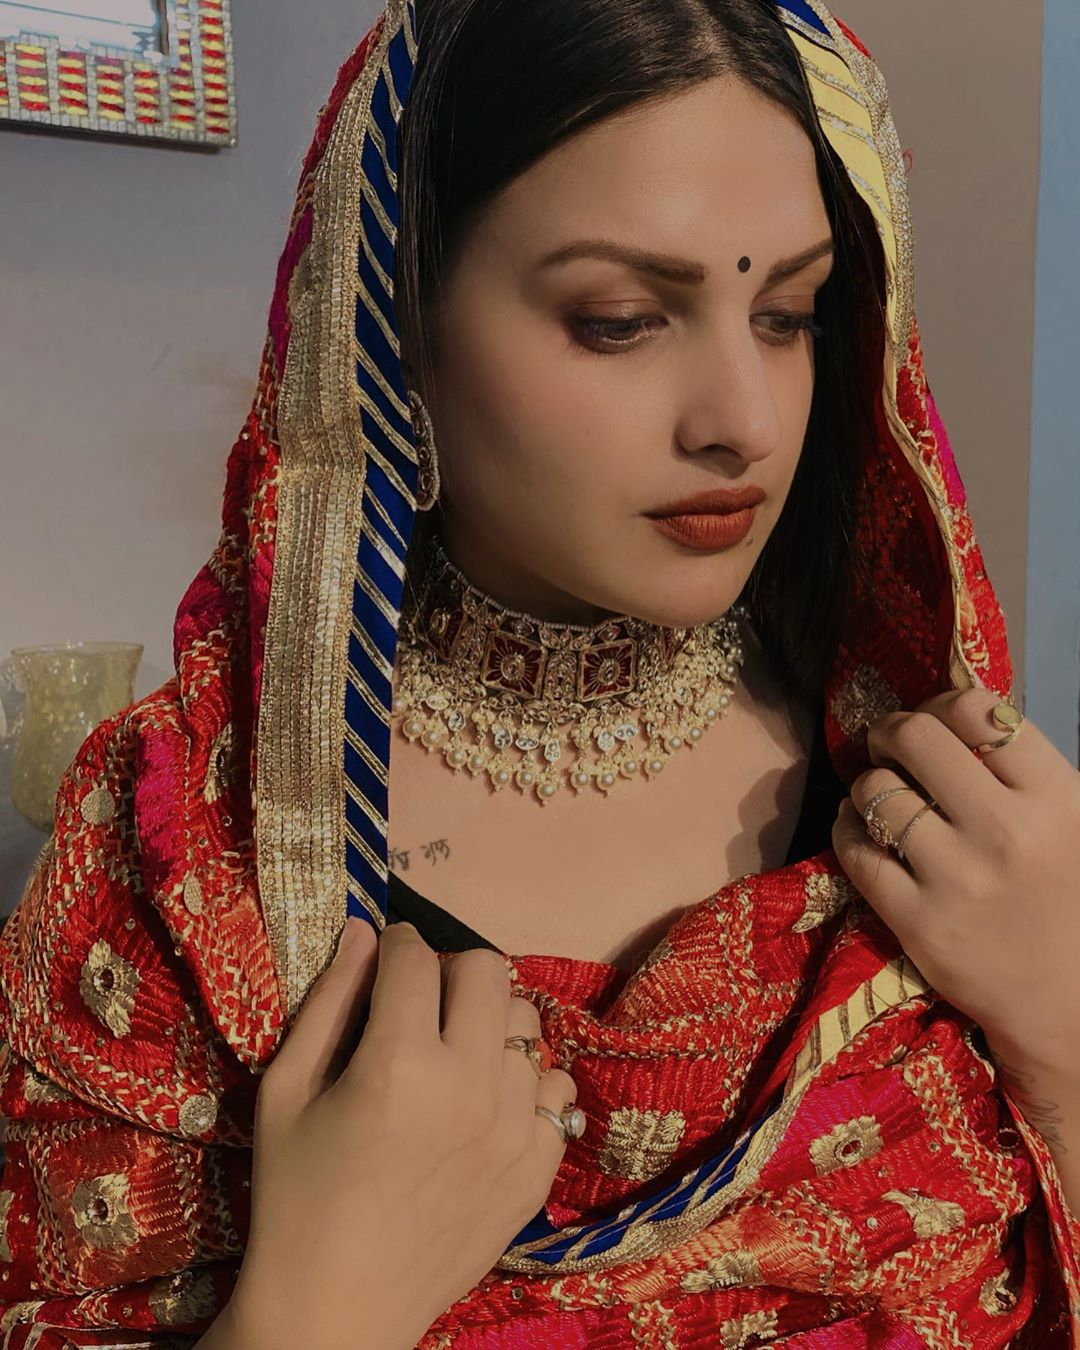 himanshi-khurana-wearing-a-mangalsutra-and-a-chuda-questions-arose-in-the-minds-of-the-fans